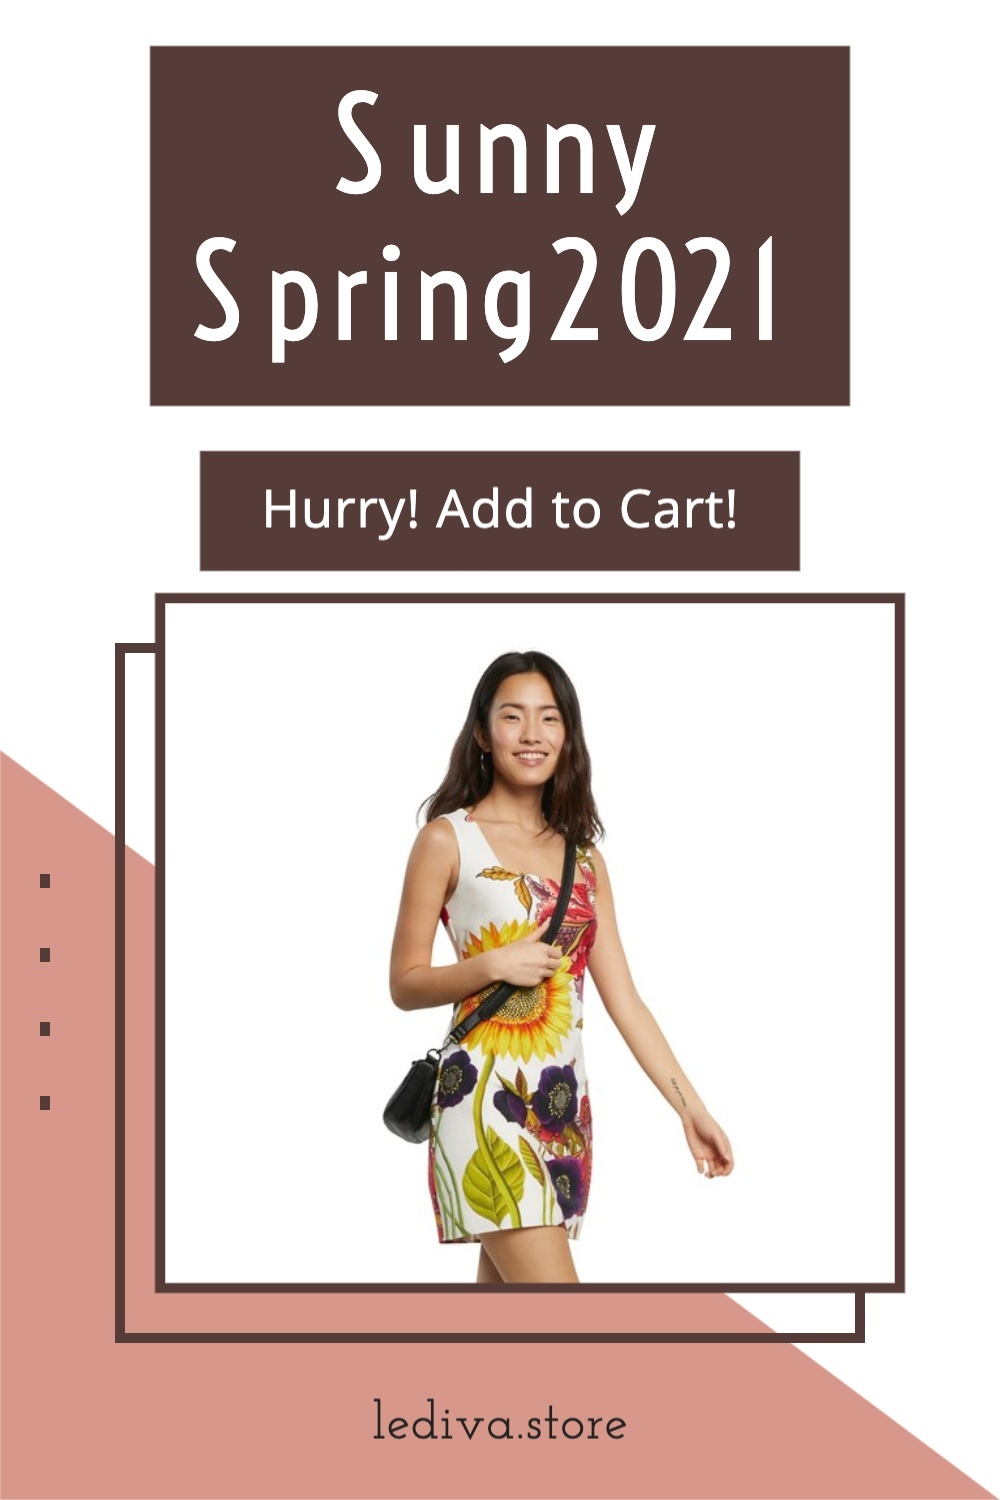 Women's fashion Pinterest Pin image created by Sandi_J using a Tailwind Create design template in 2021.